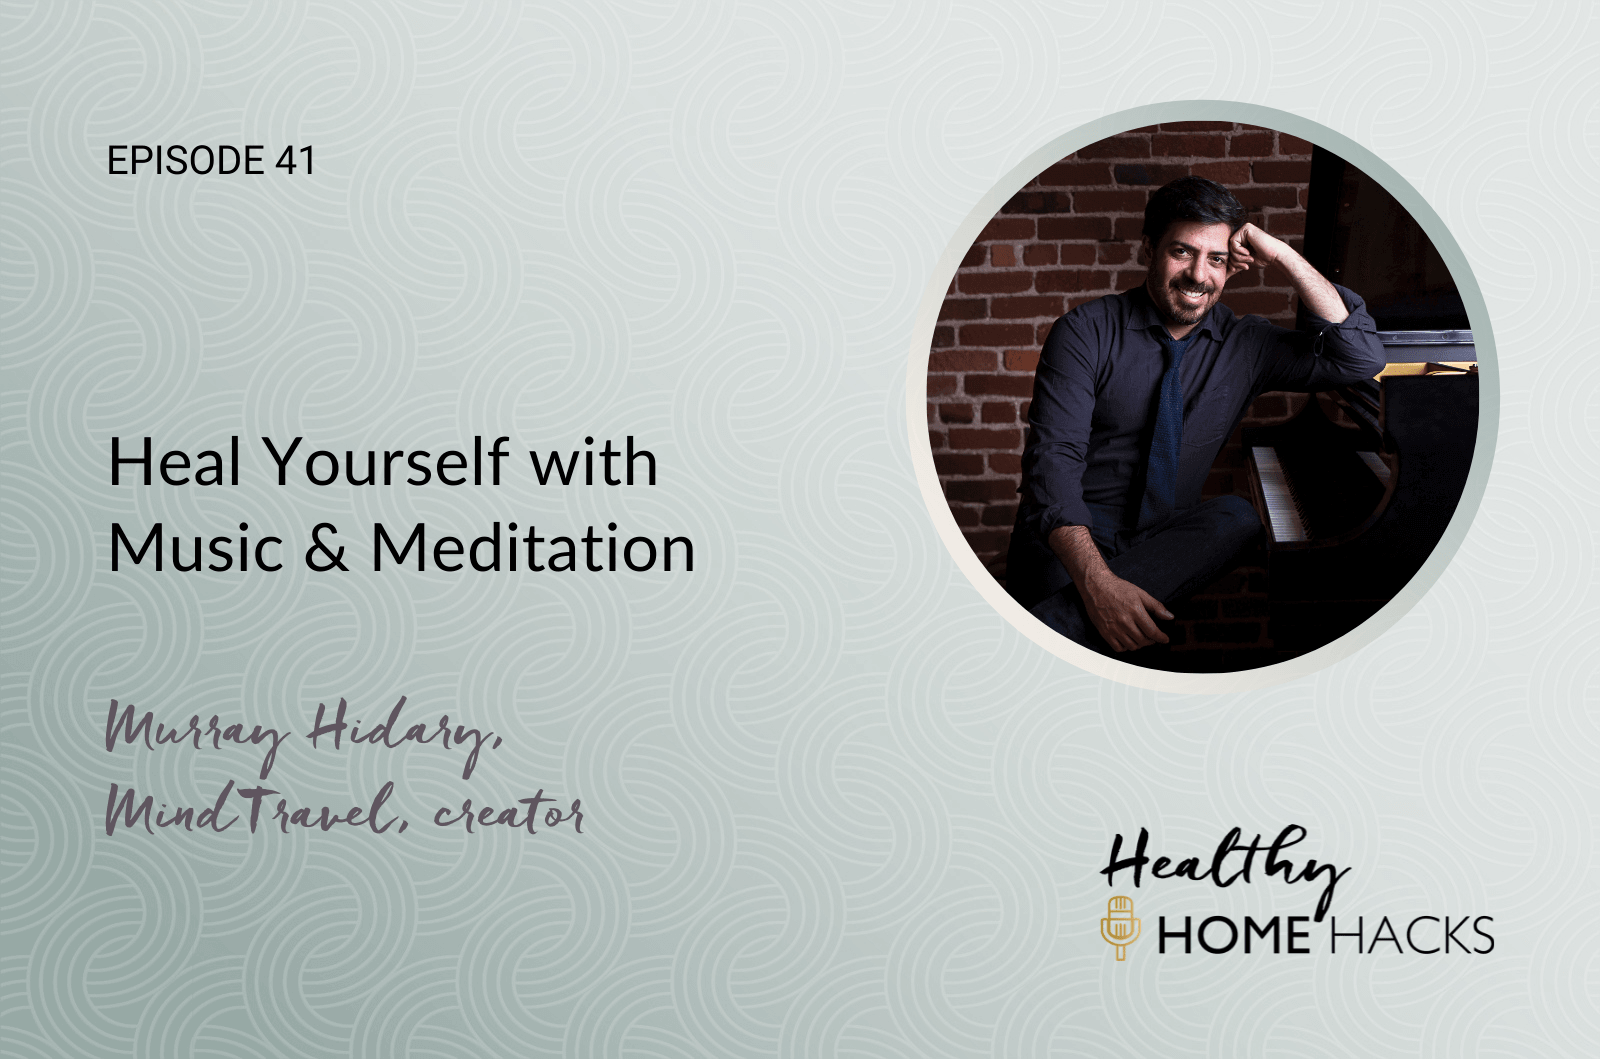 Heal Yourself with Music & Meditation